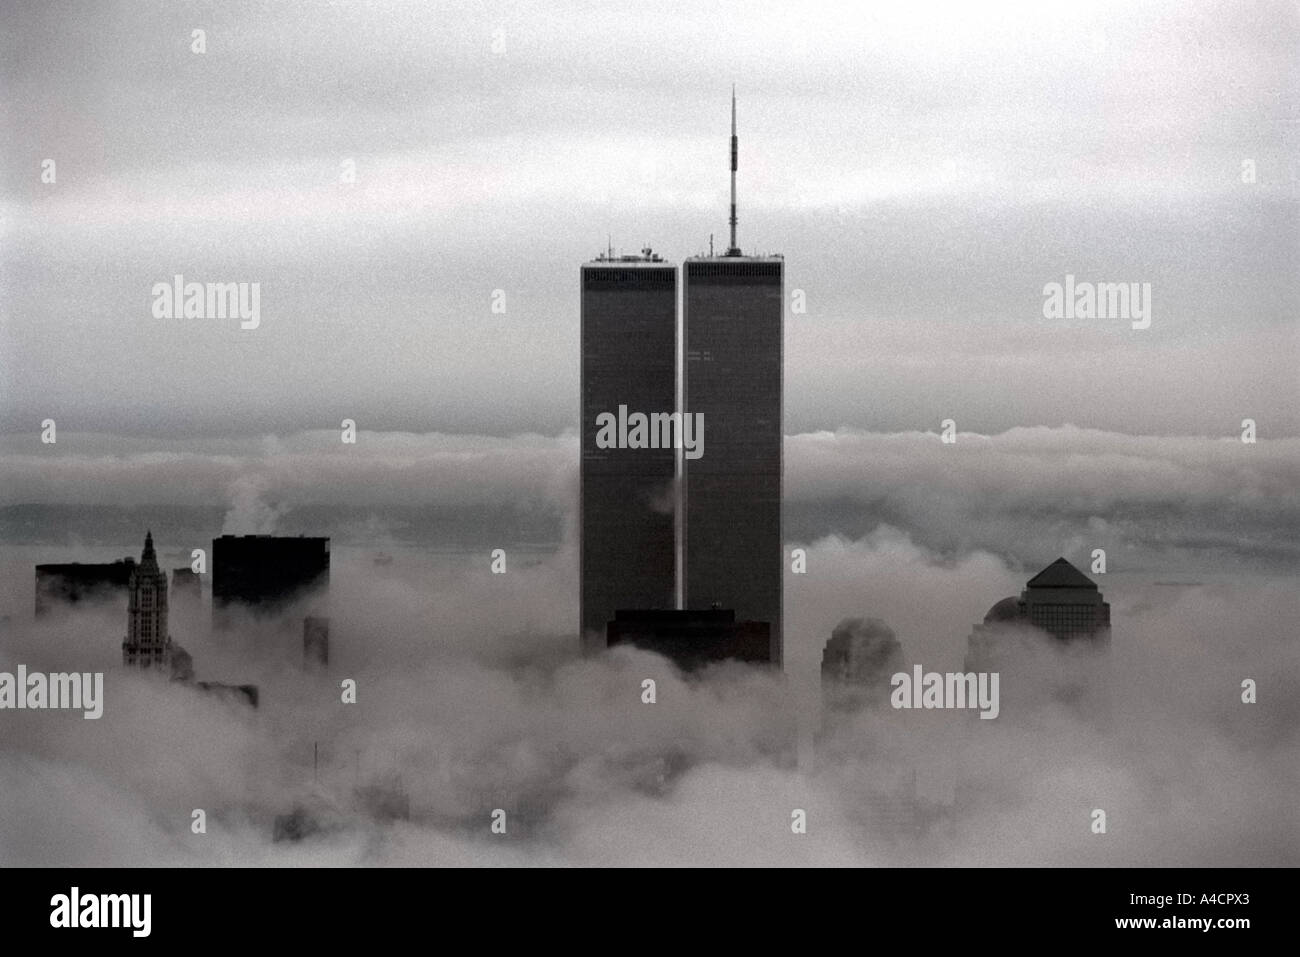 The World Trade Center rises above the fog - Stock Image